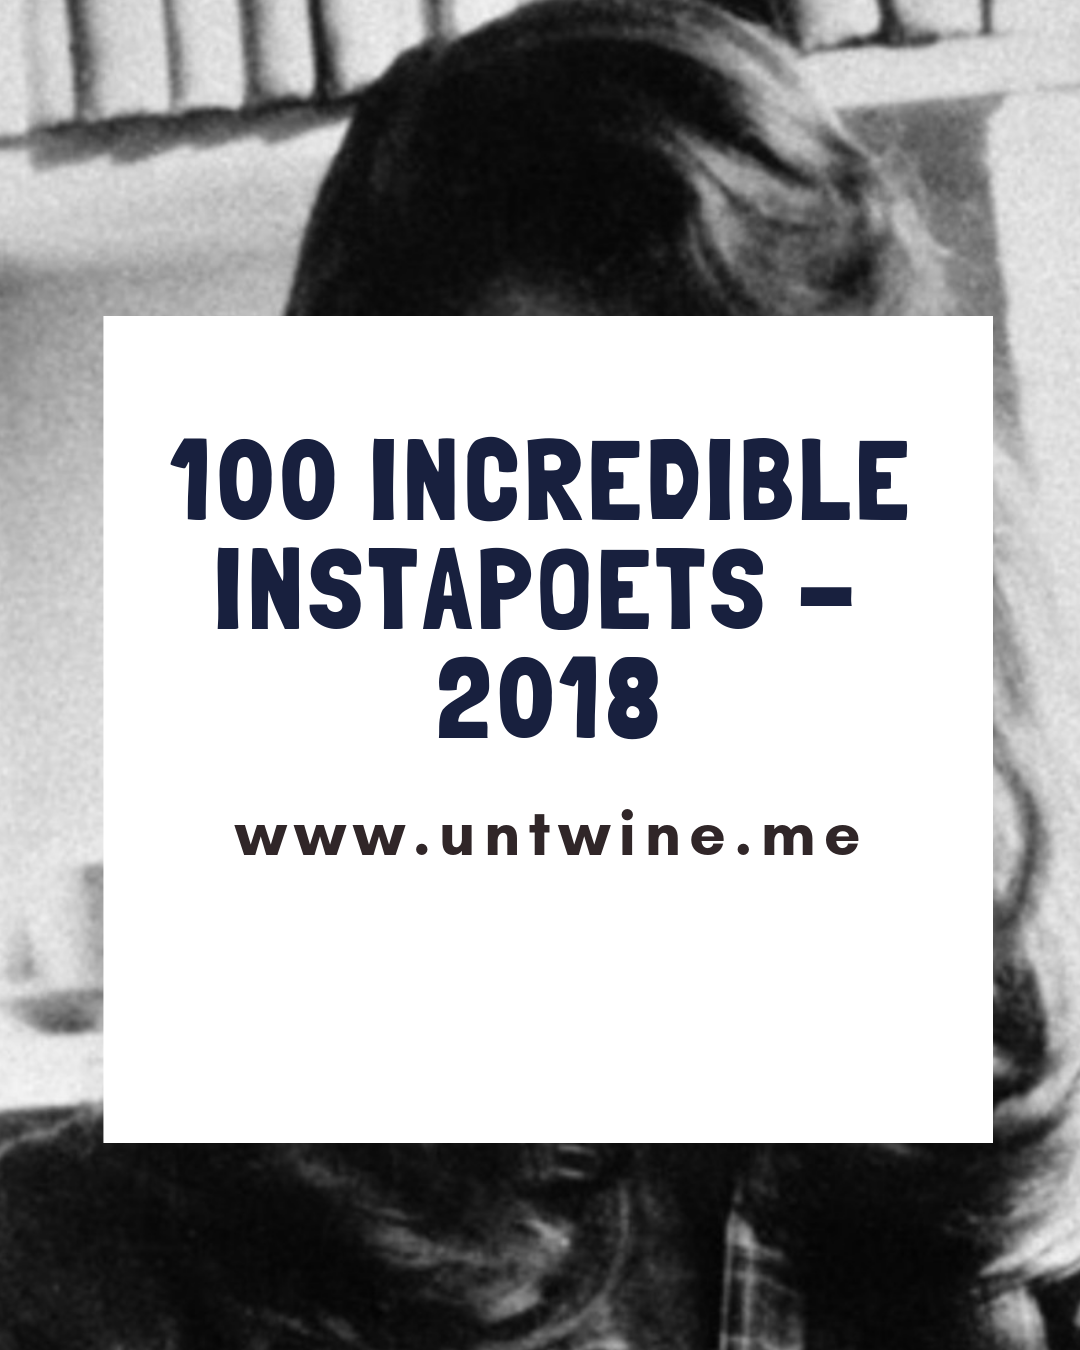 100 INCREDIBLE INSTAPOETS OF 2018: SIMONE FLYNN